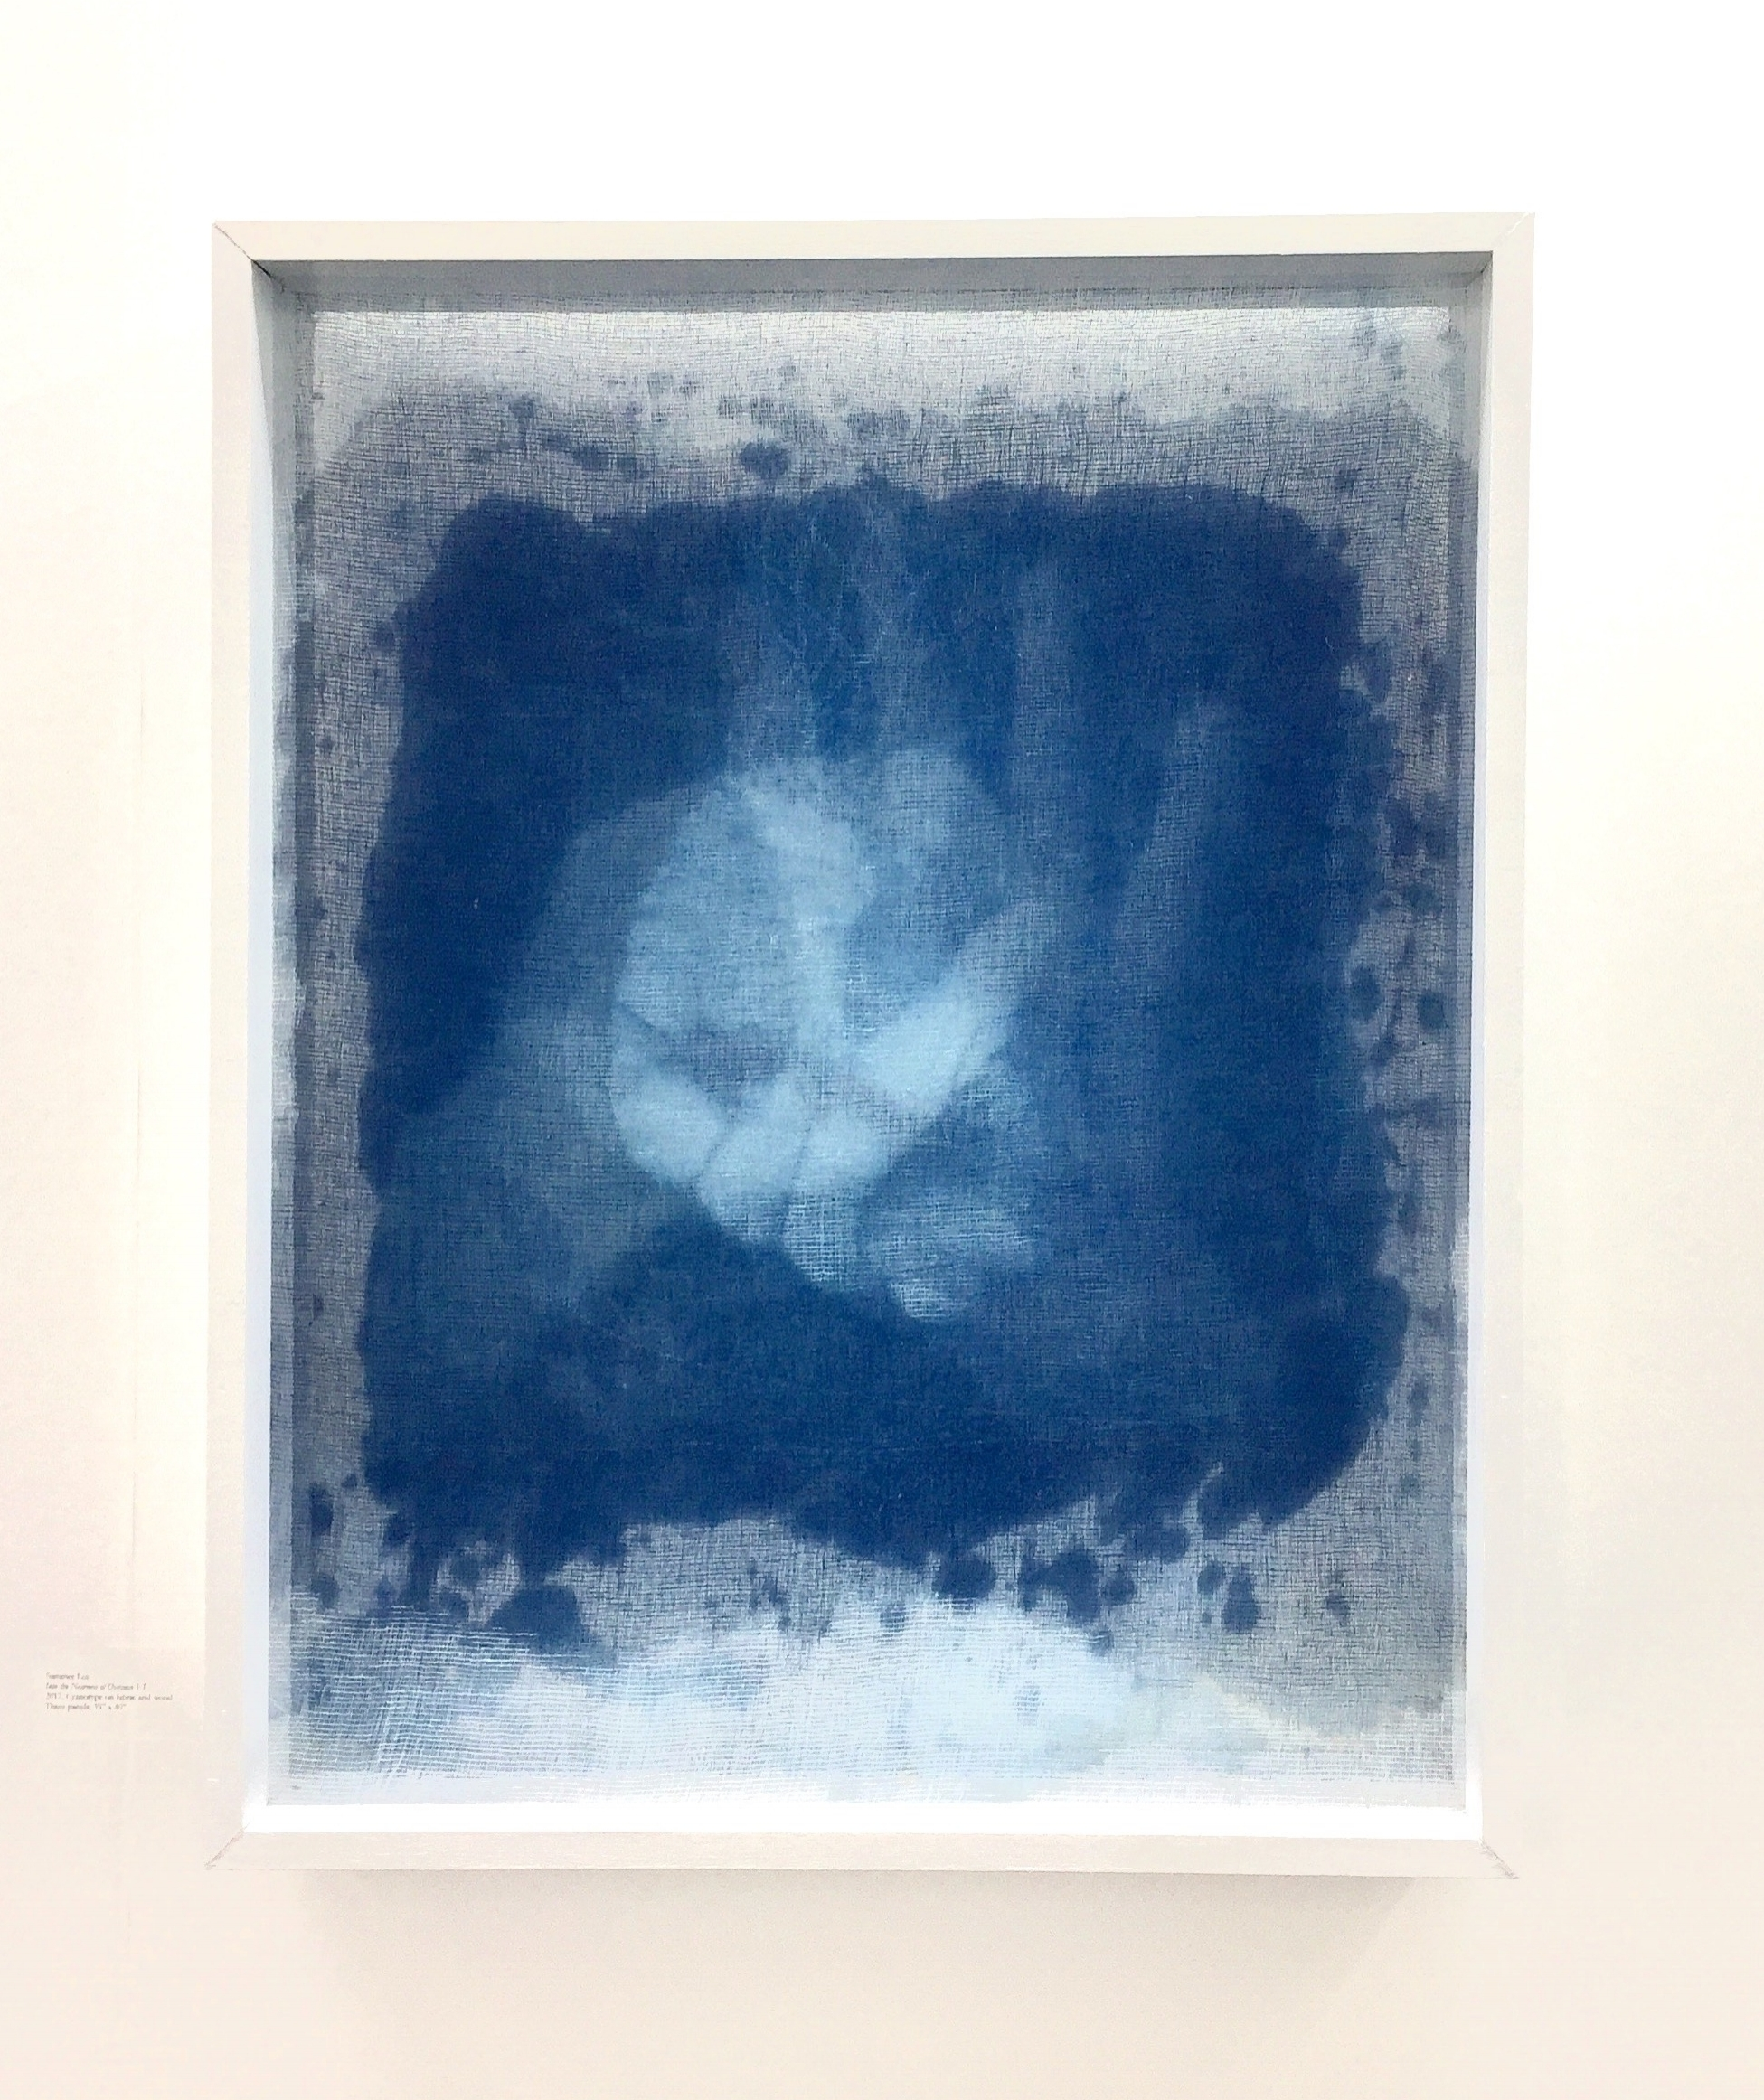 - Image:  Summer Lee, Into the Nearness of Distance #6,  three panels of Cyanotype on fabric mounted on wooden frame.